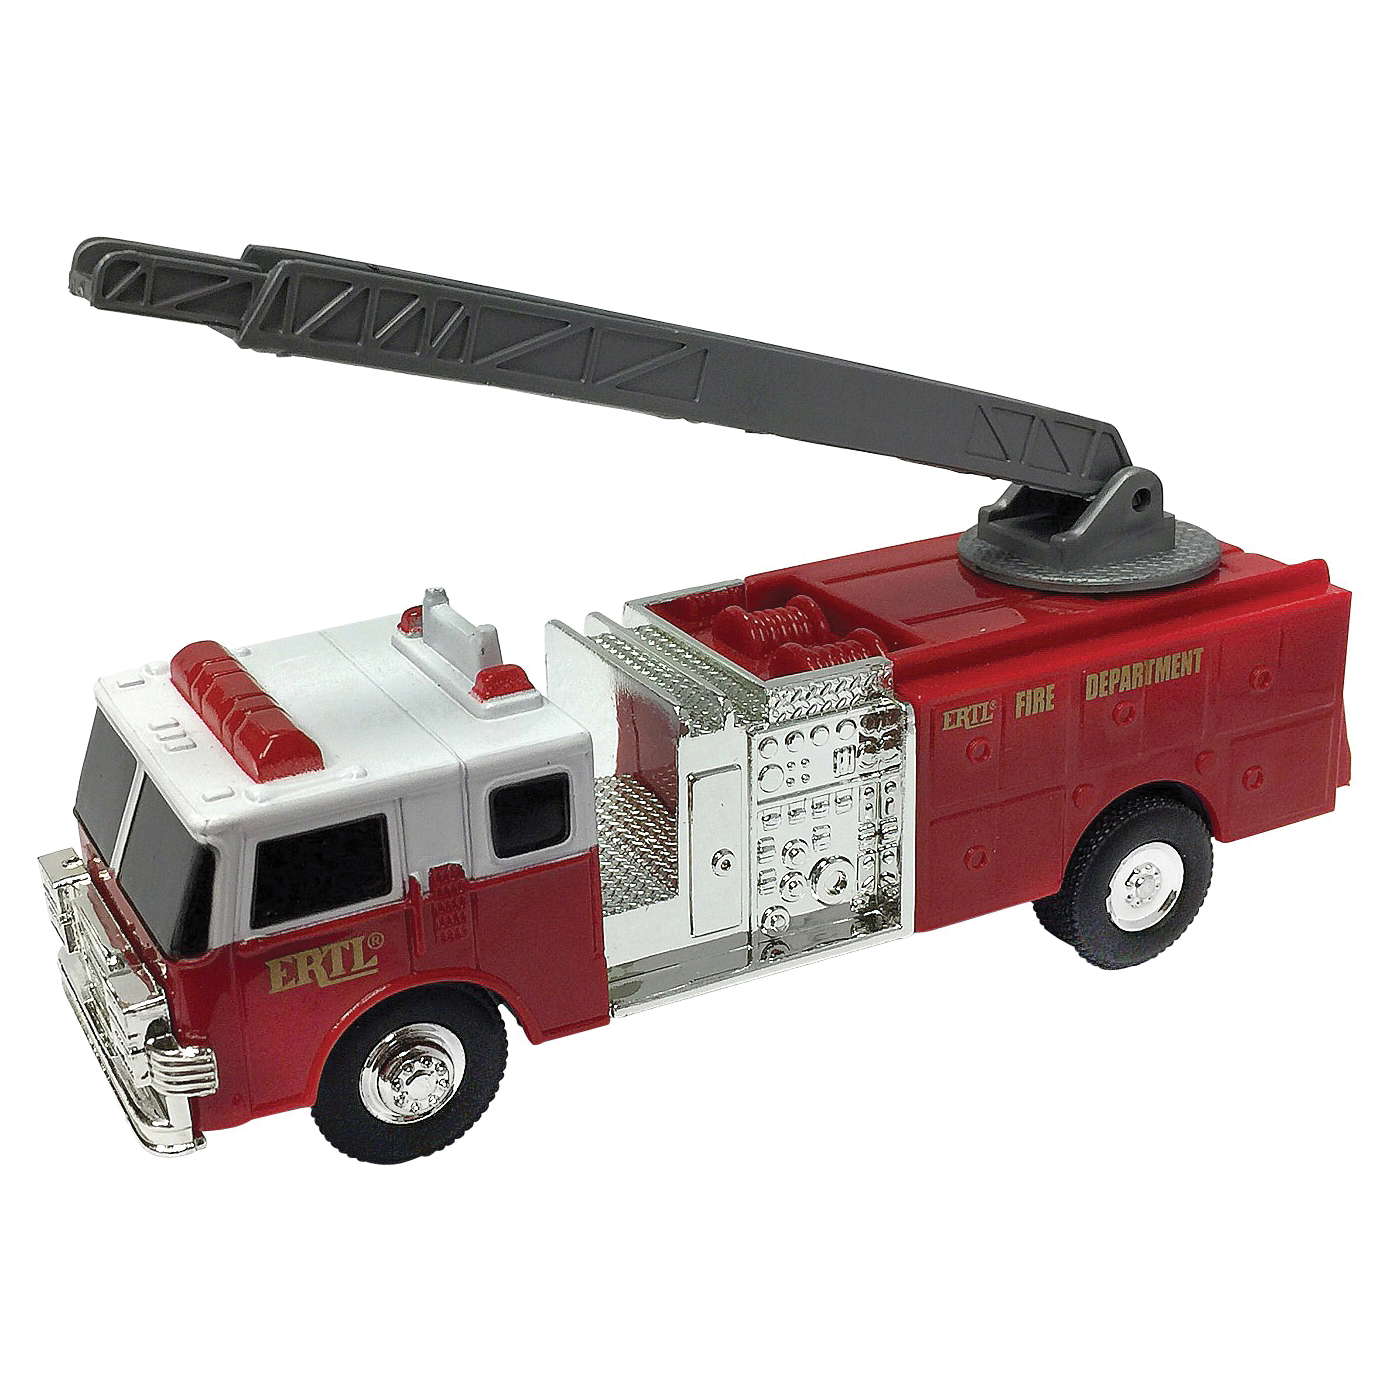 Picture of ERTL 46731 Toy Fire Truck, 3 years and Up, Plastic, Red